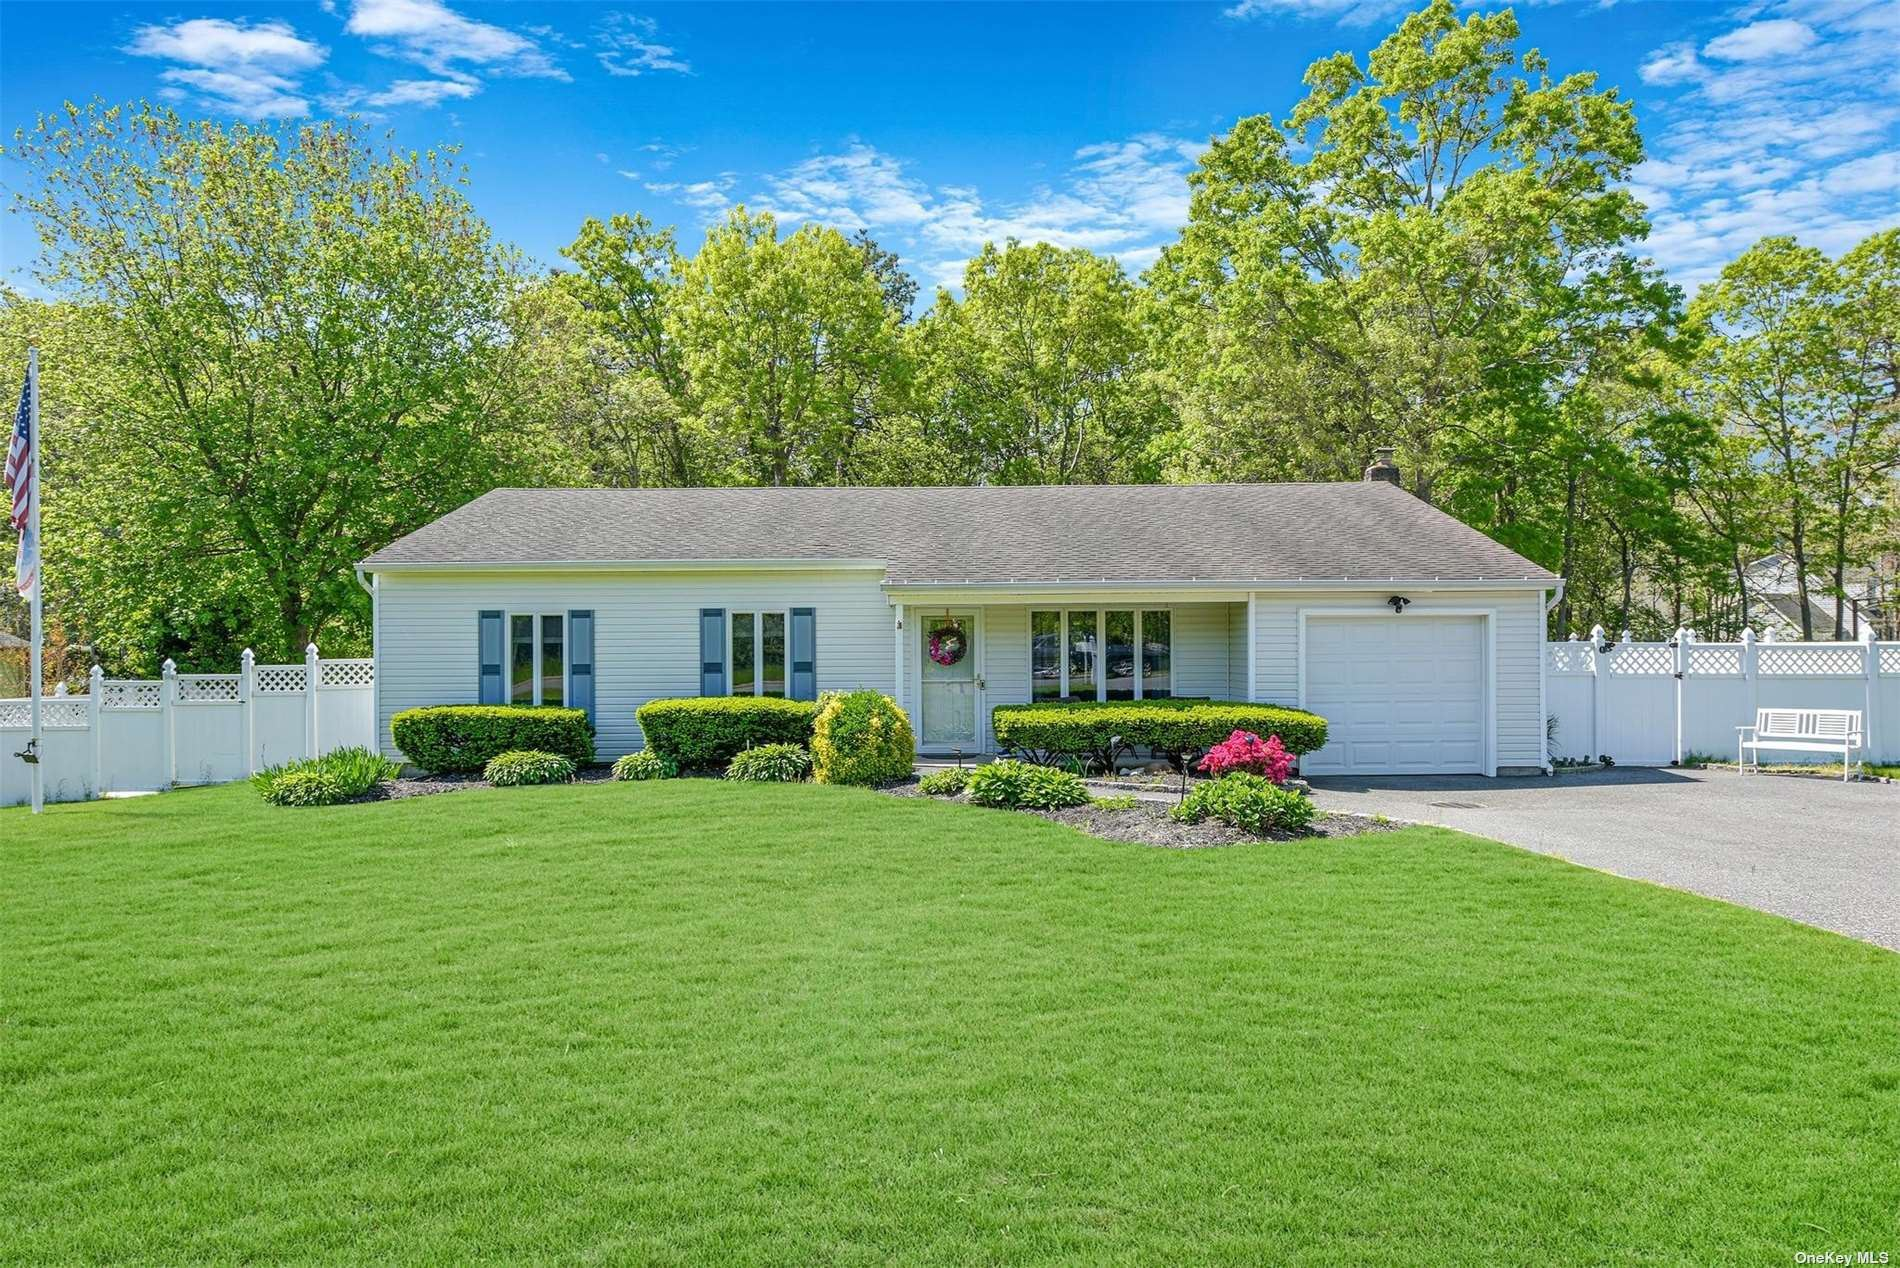 26 Gina Court, East Patchogue, NY 11772 - MLS#: 3314468